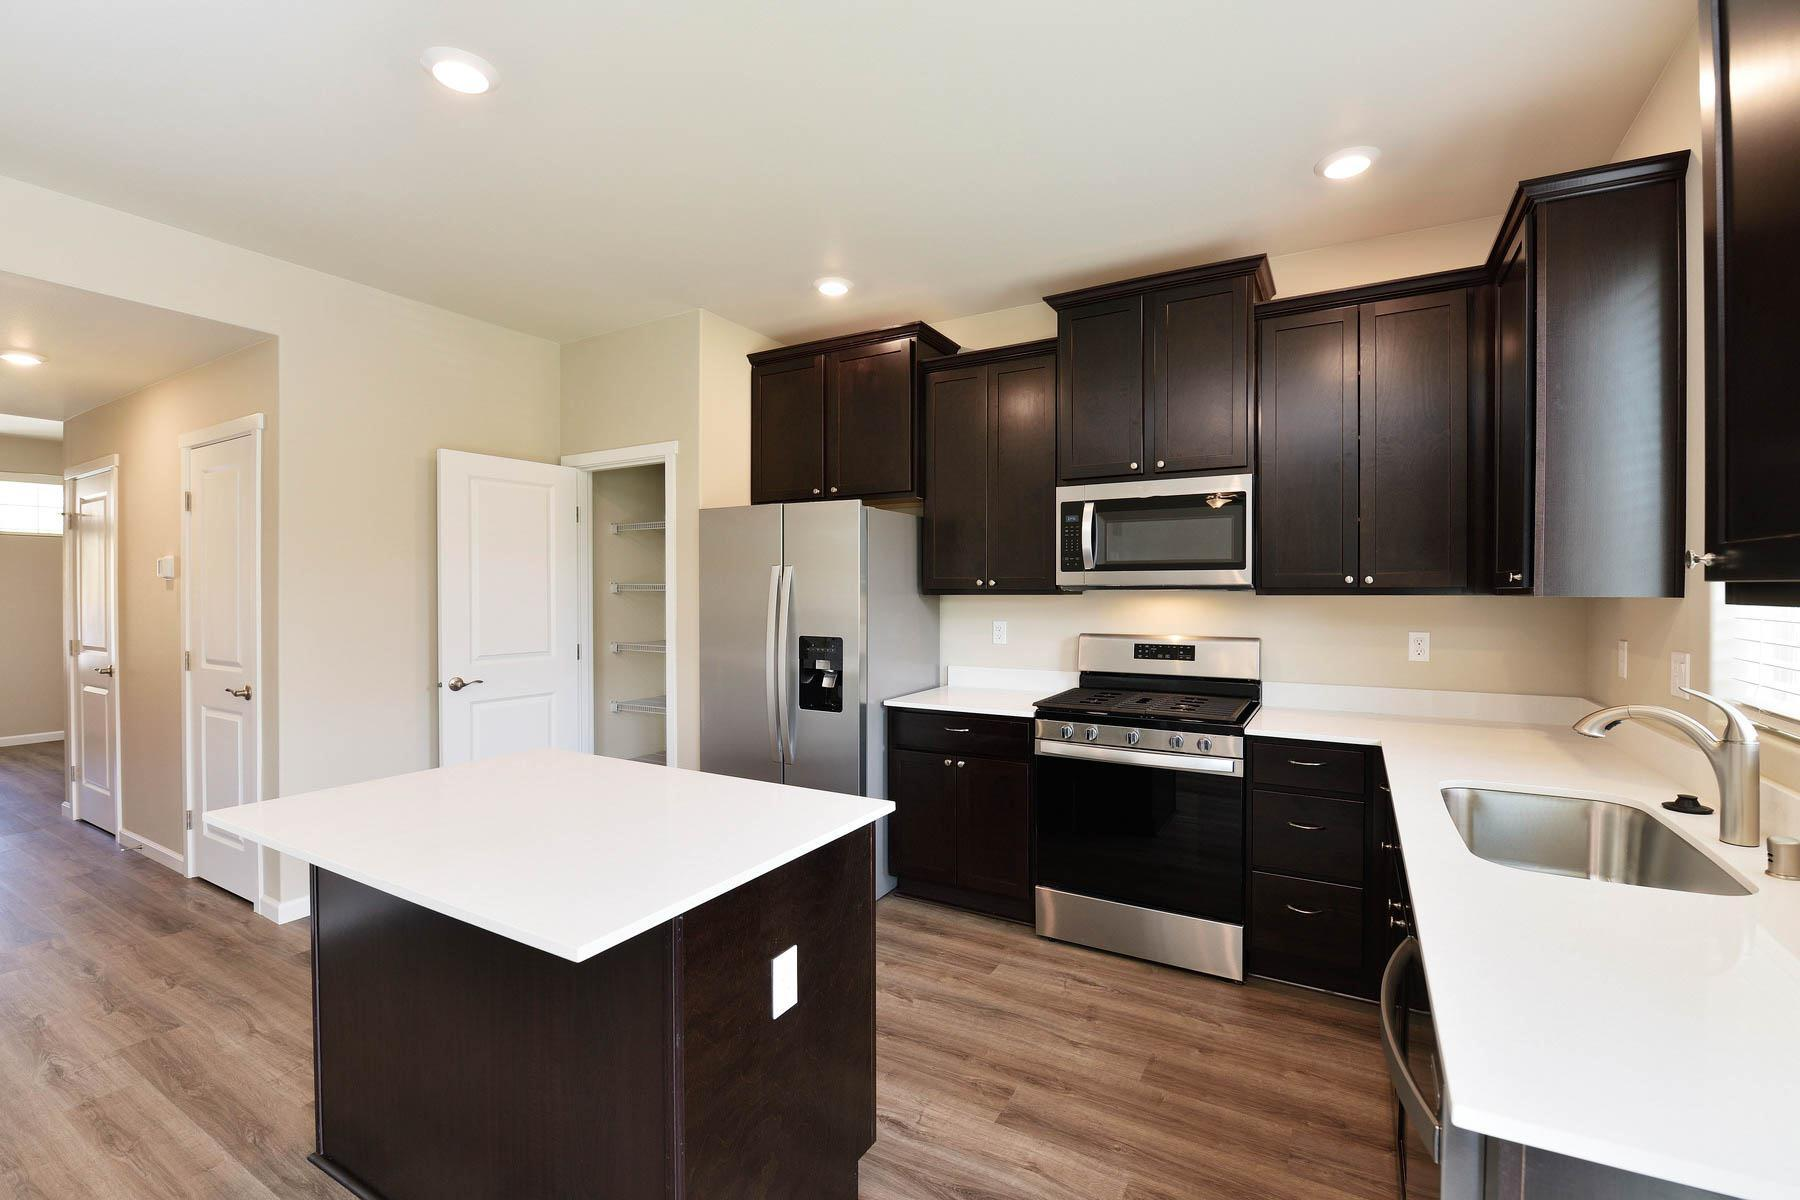 Kitchen featured in the Cypress By LGI Homes in Bremerton, WA